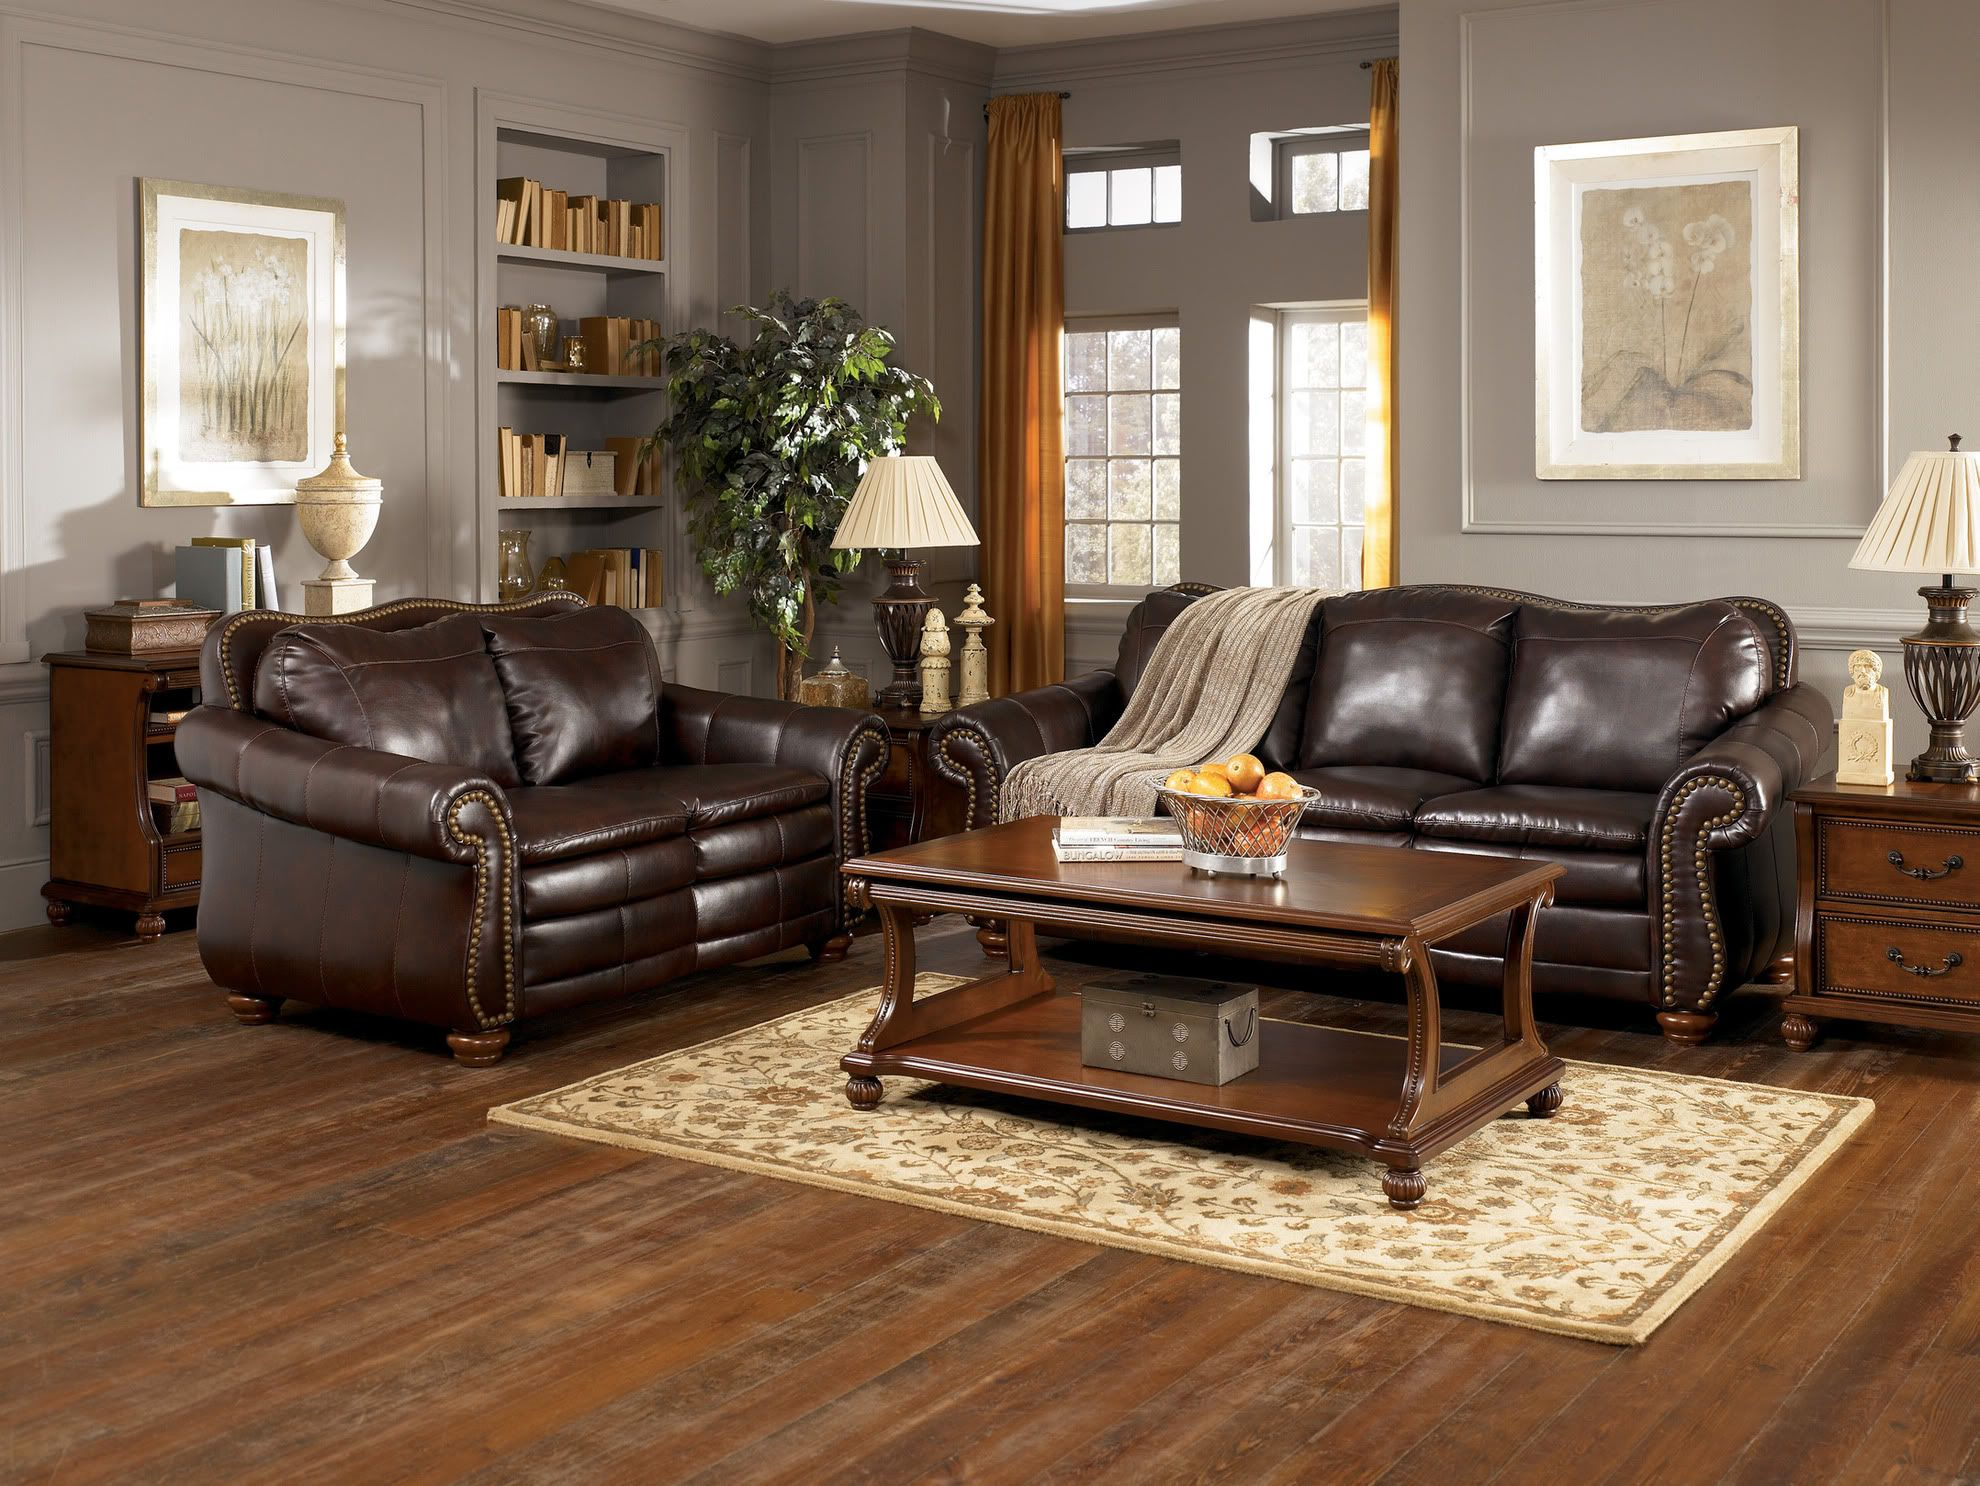 Fetching grey living room with brown furniture design Grey and brown living room ideas